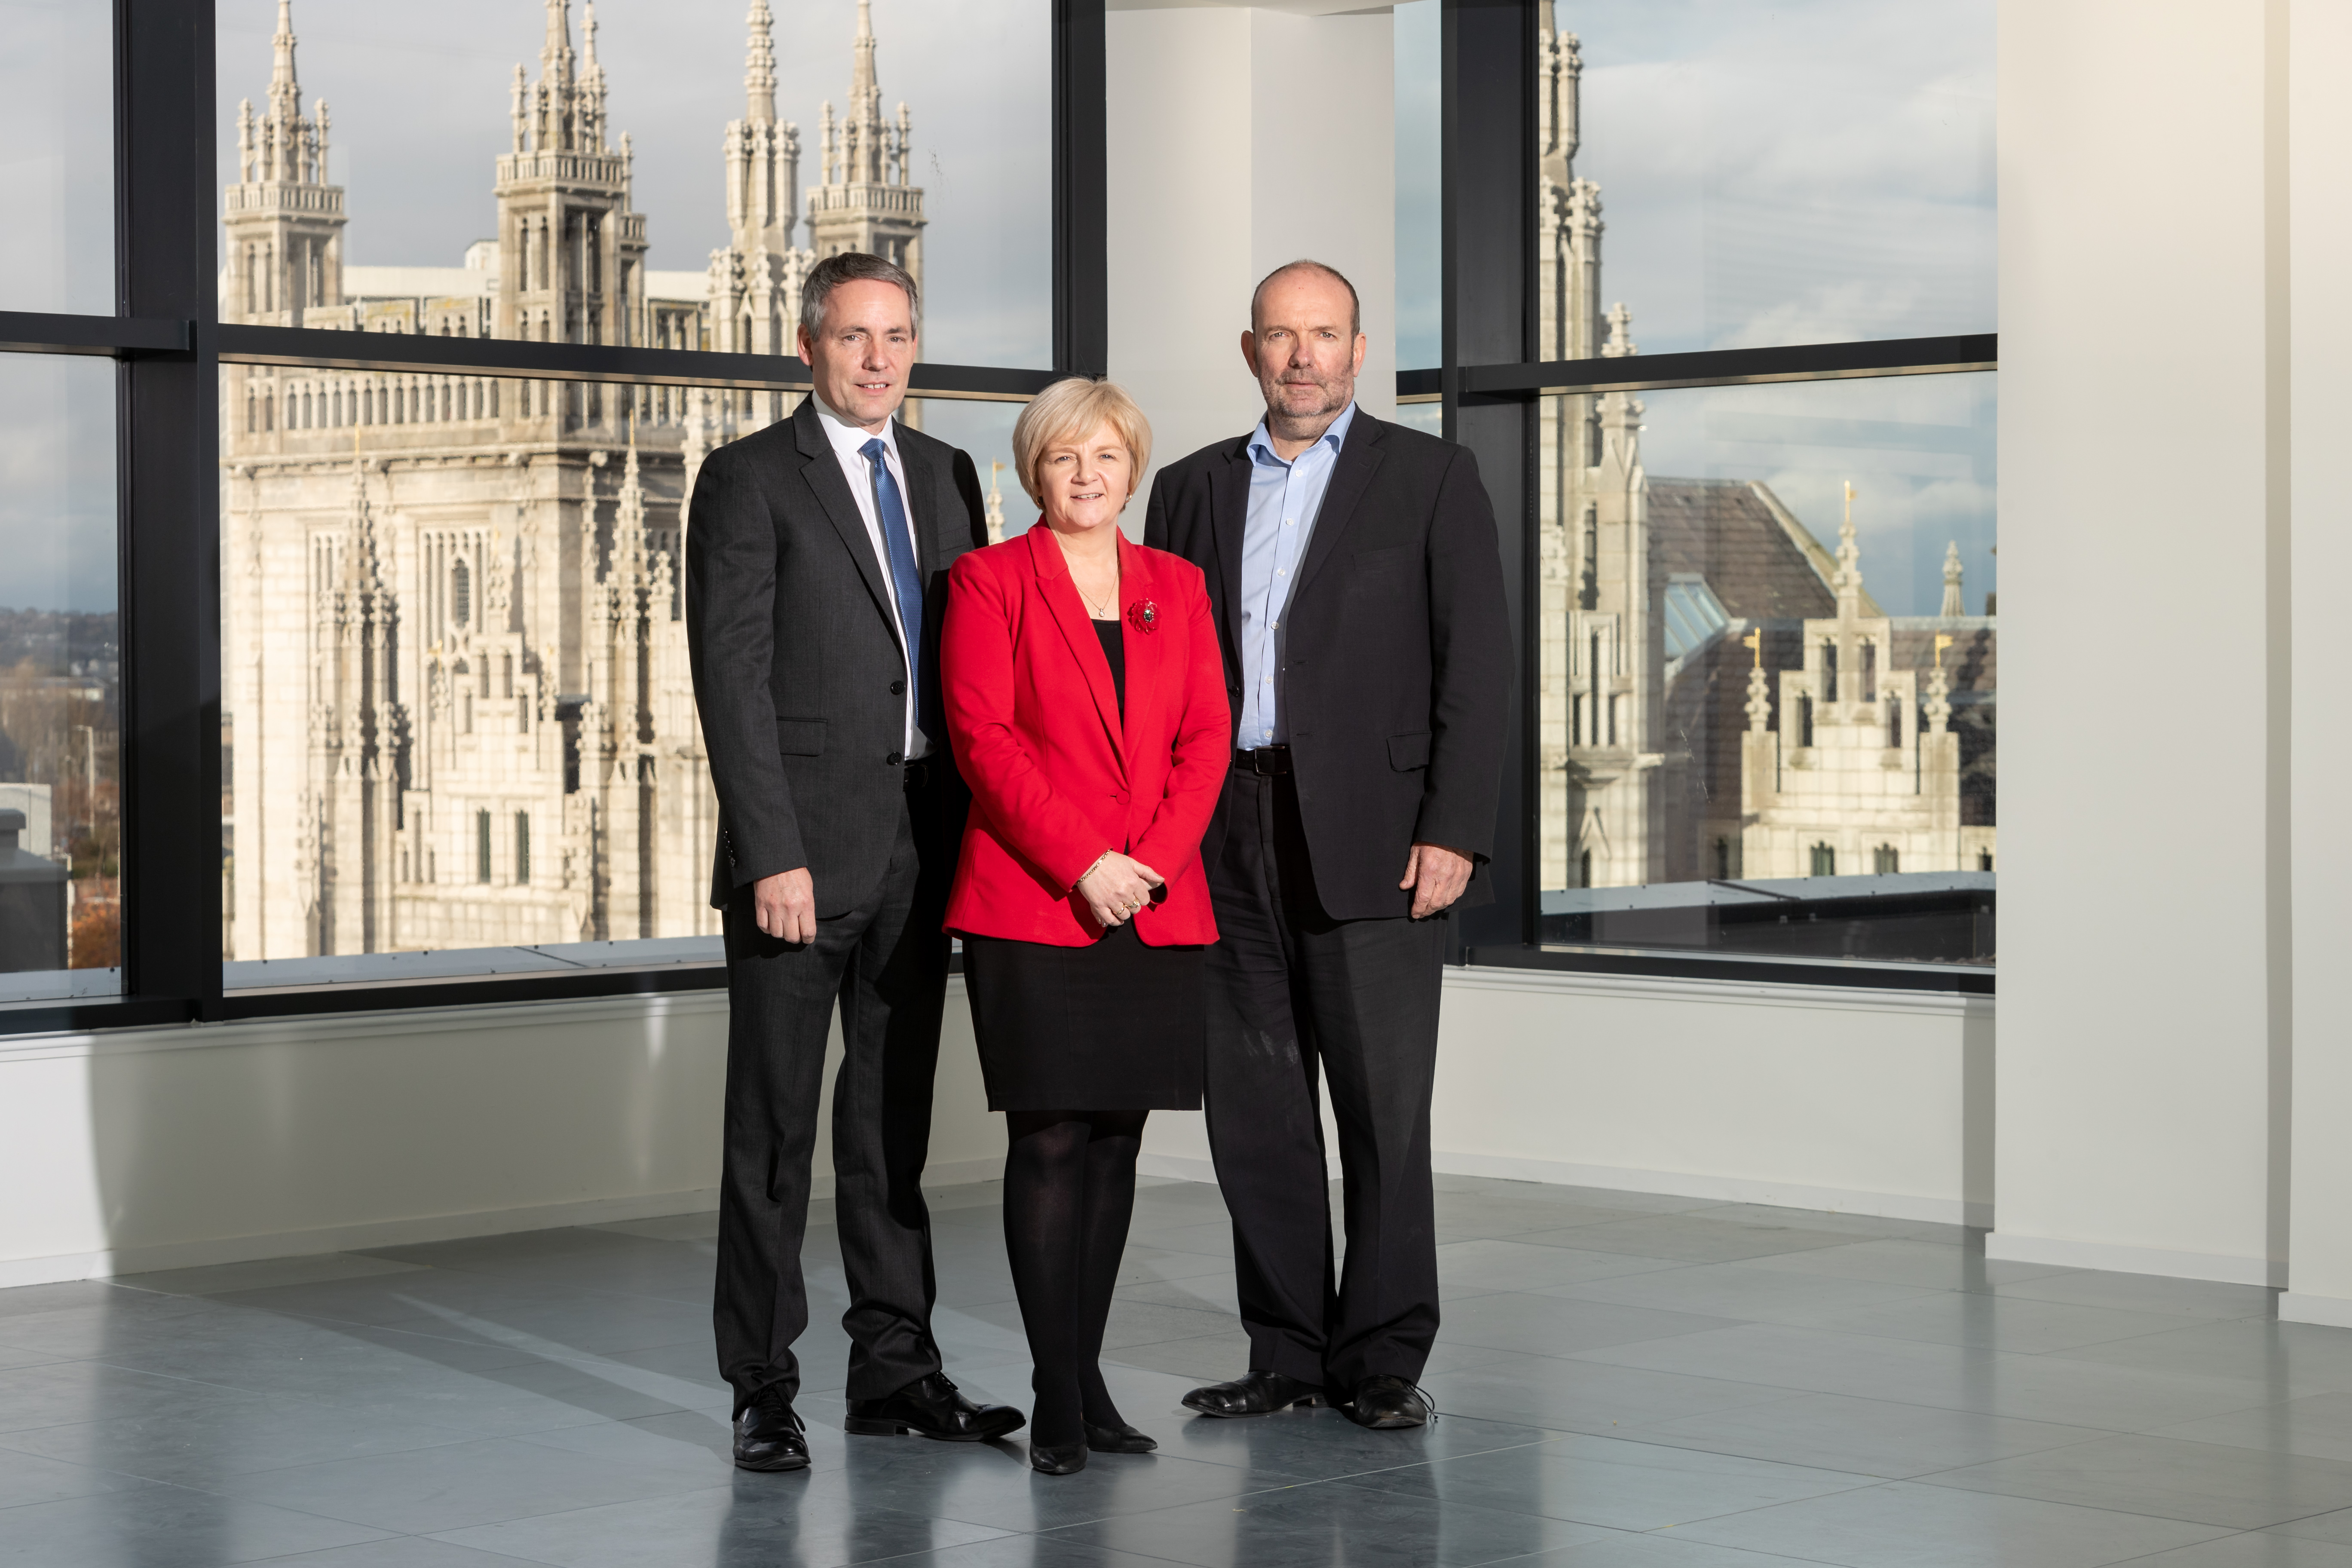 Oil firm Tenaris to move into Marischal Square - News for